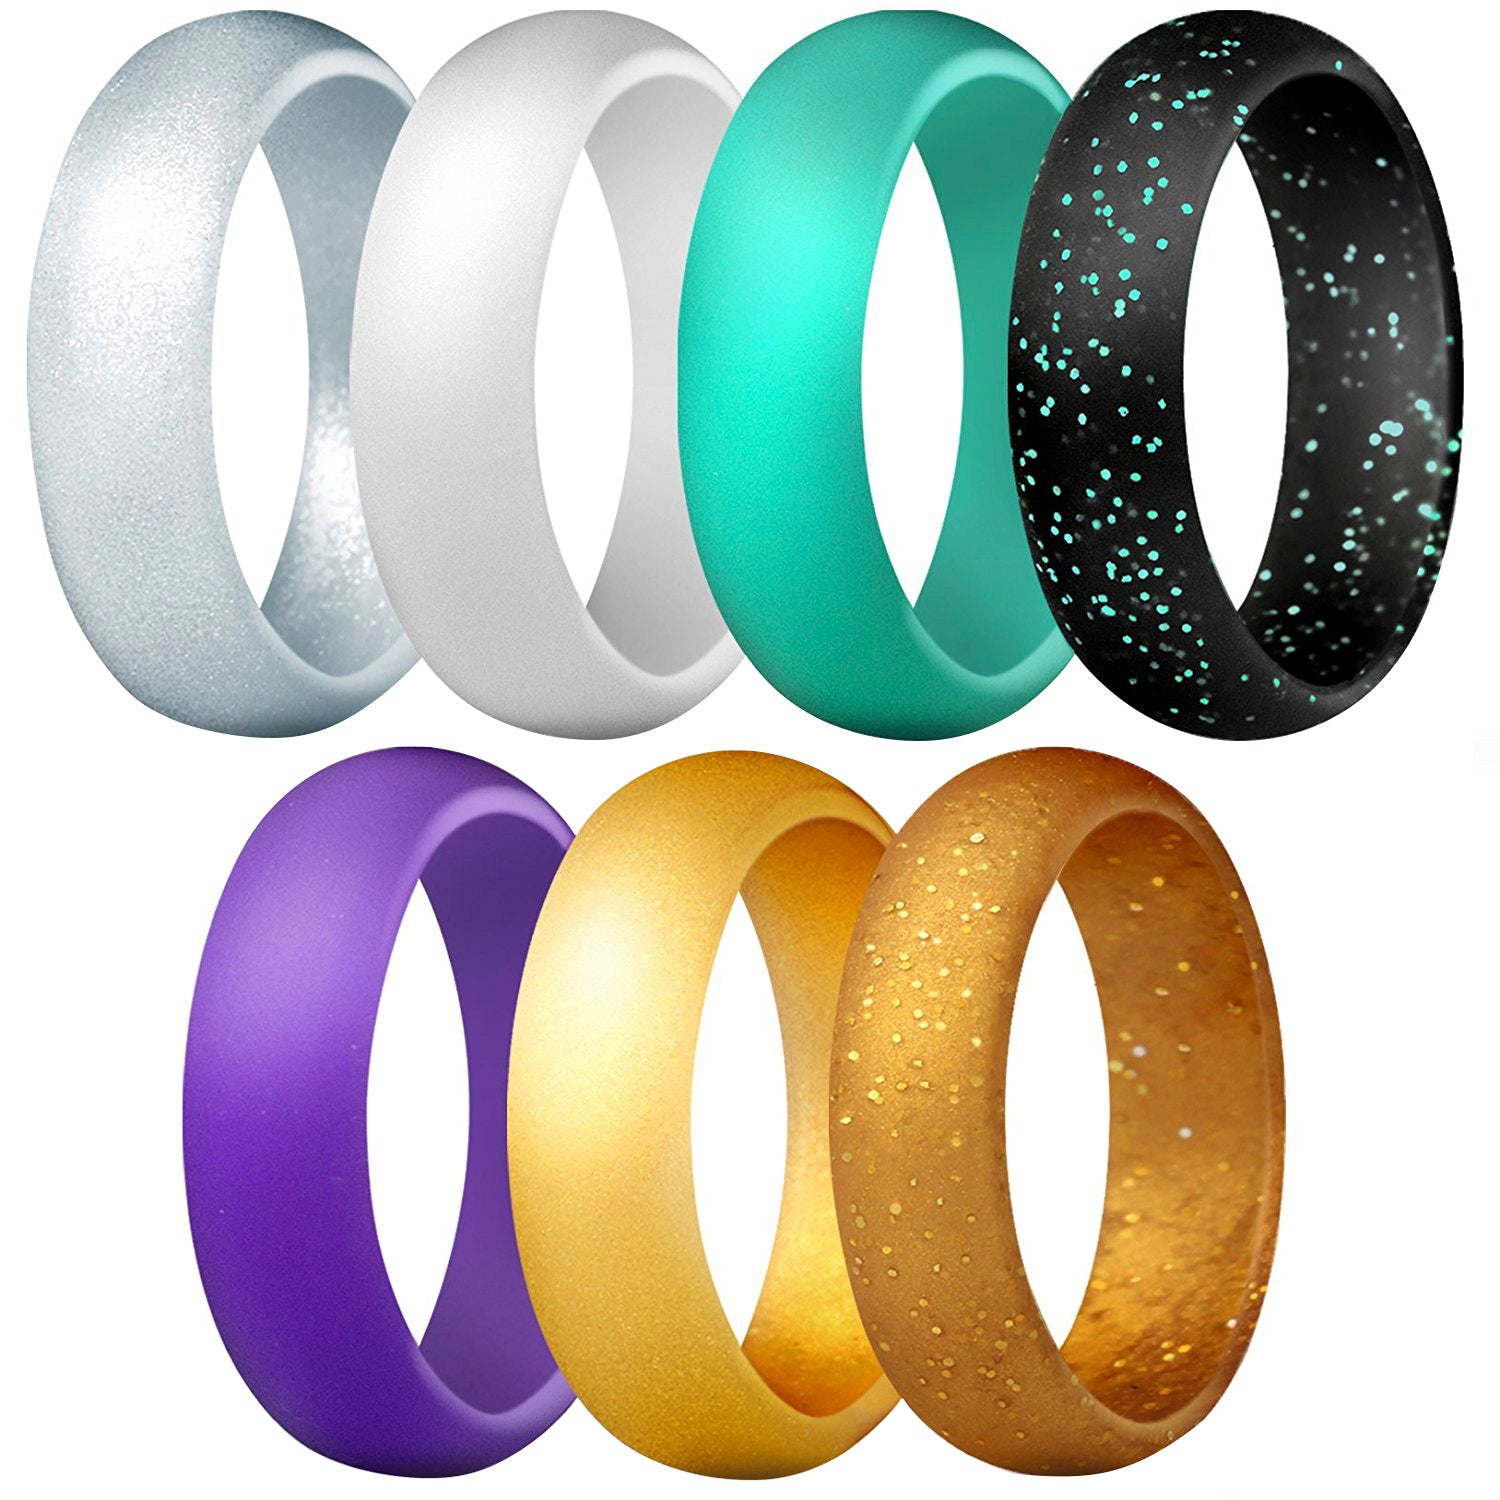 Women's Classic Rings 7 Pack - Galaxy